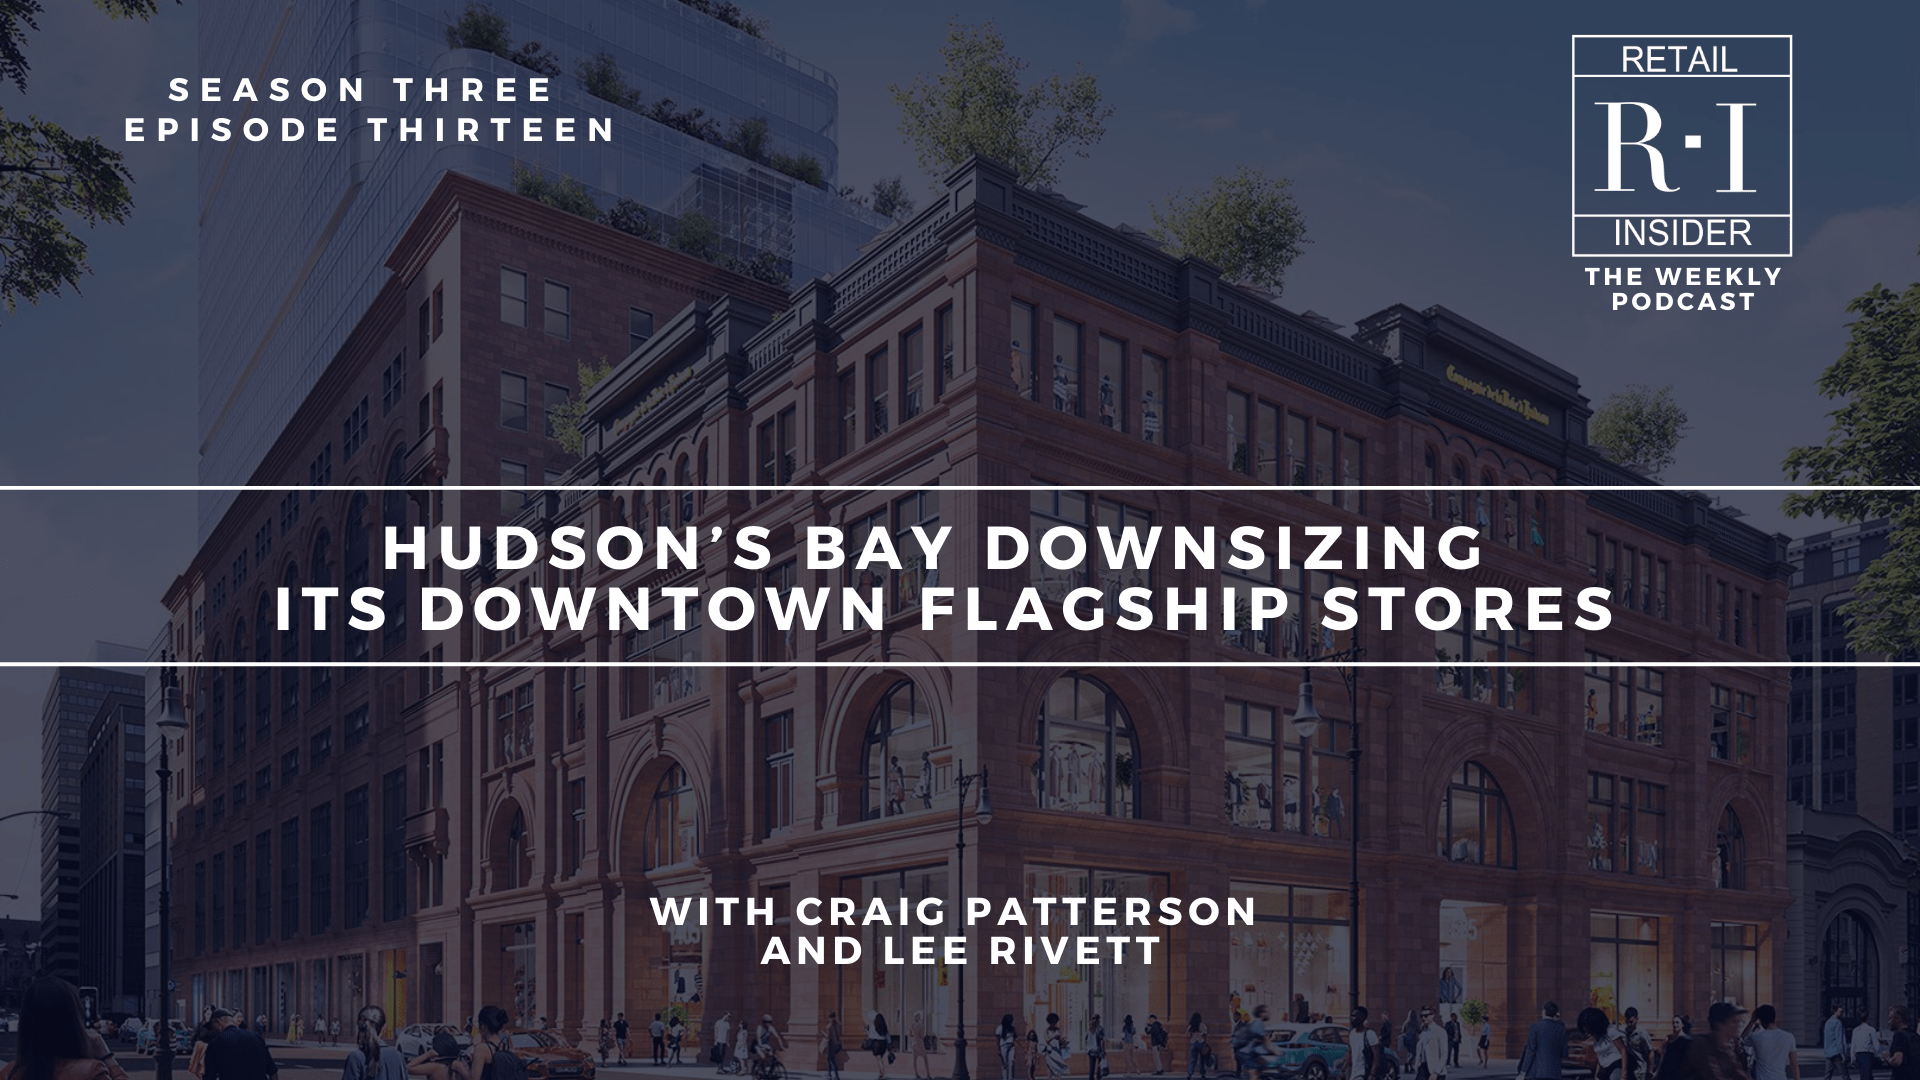 Season 3, Episode 13: Hudson's Bay Downsizing its Downtown Flagship Stores